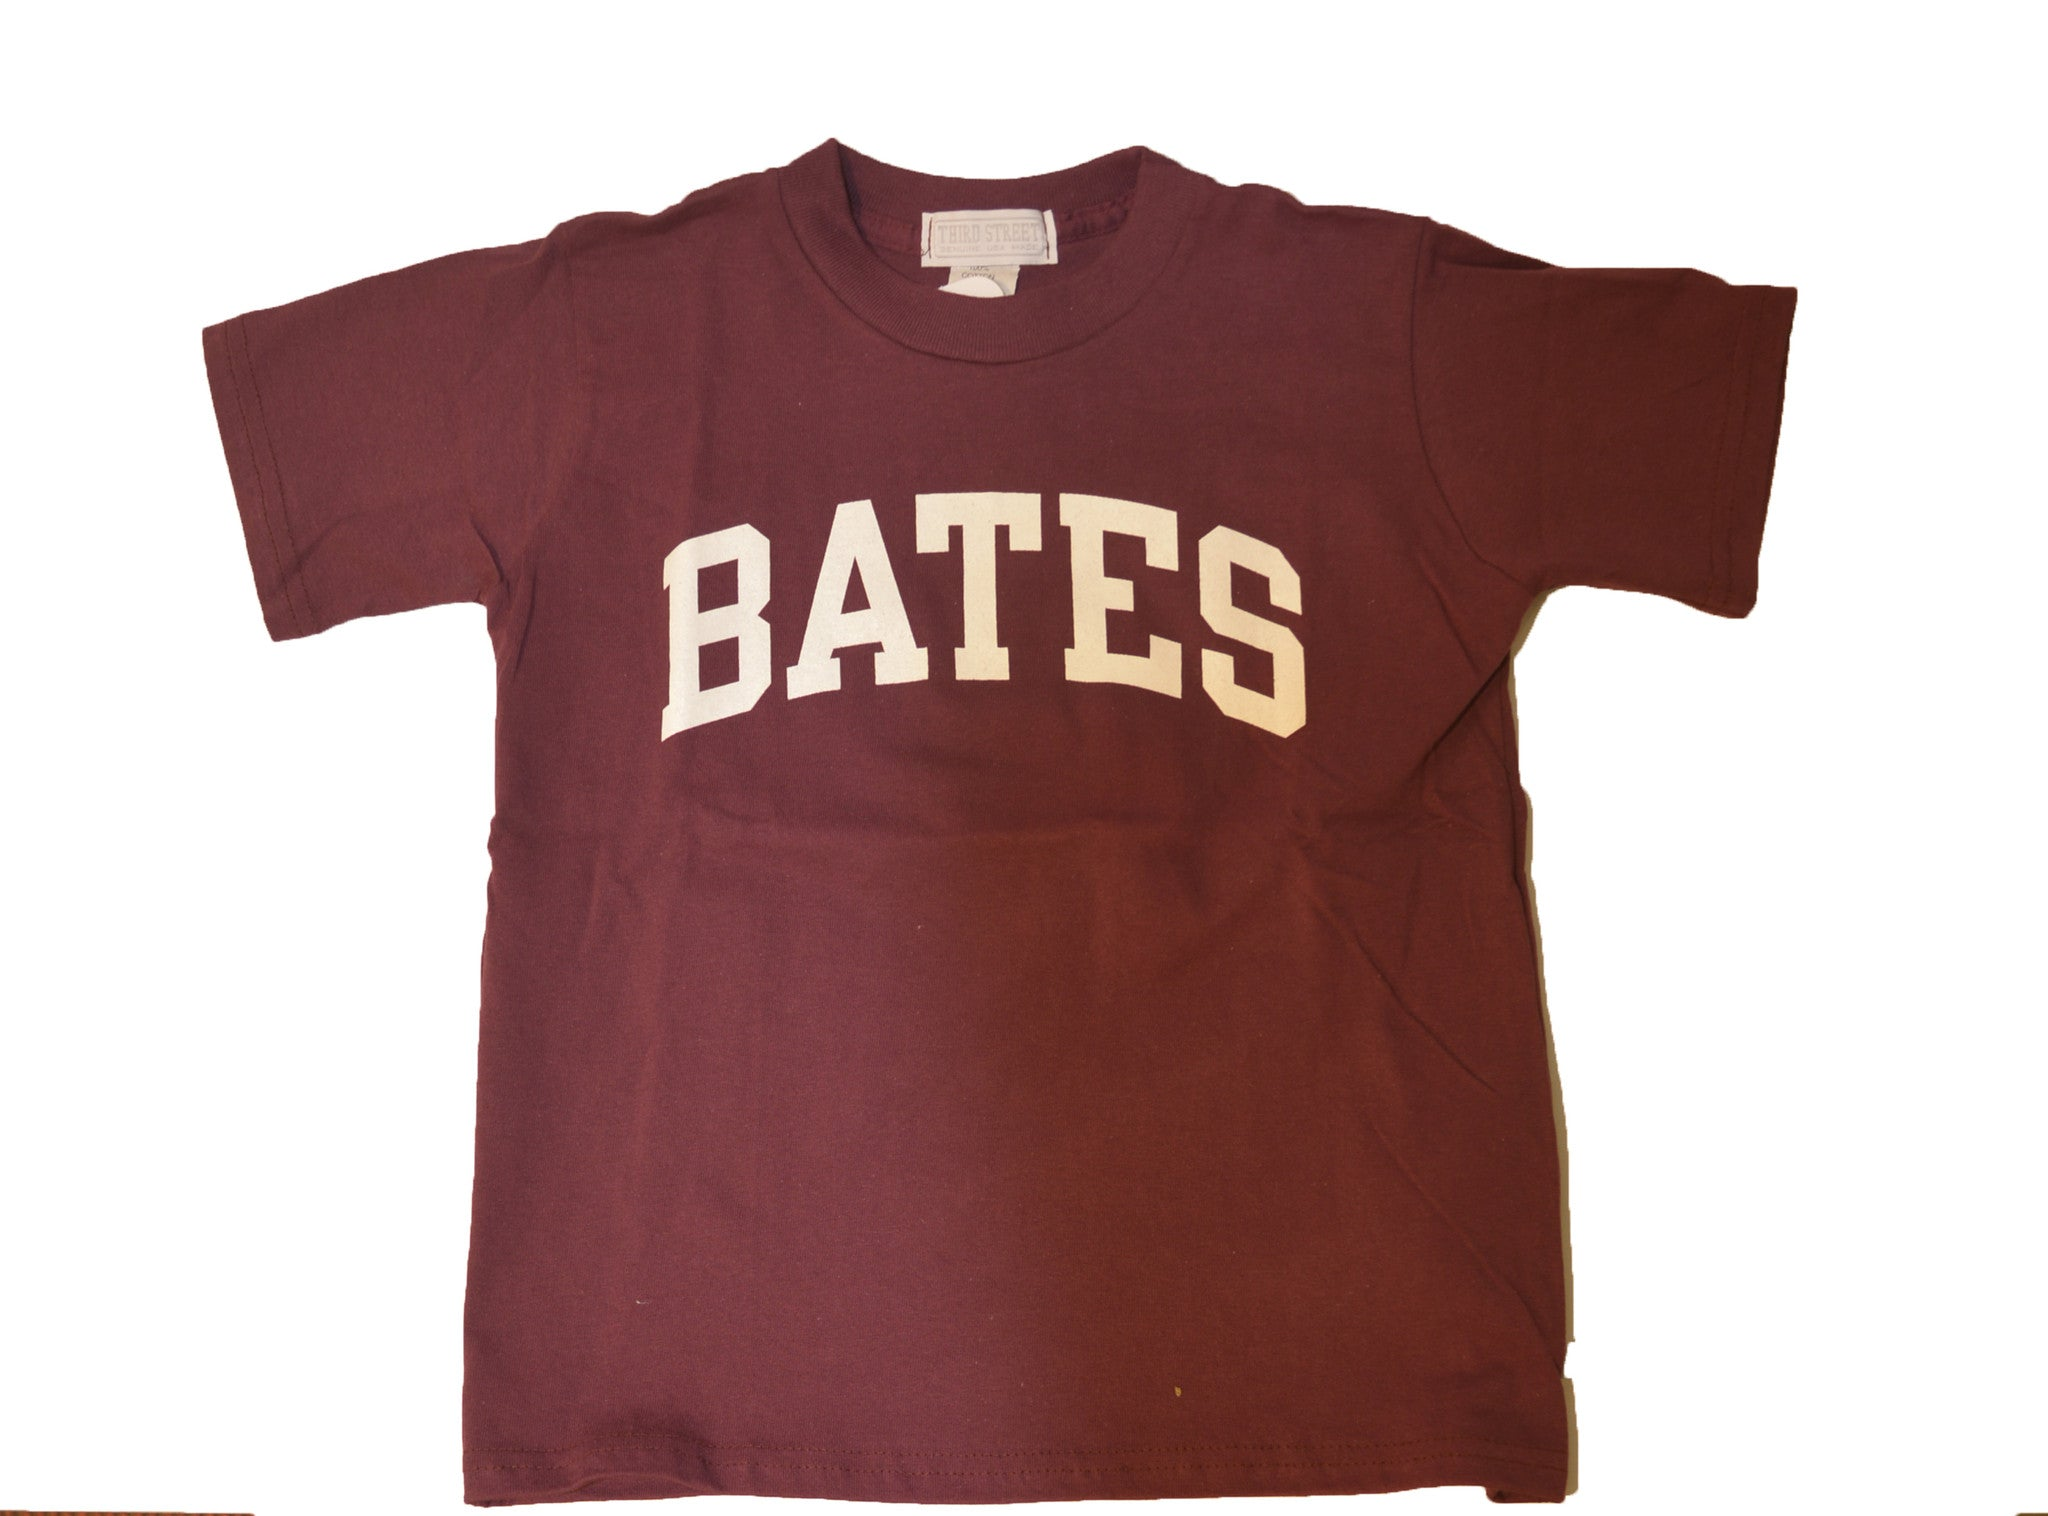 Maroon Bates Youth Tee Shirt - Kids & Babies, Limited Sizes